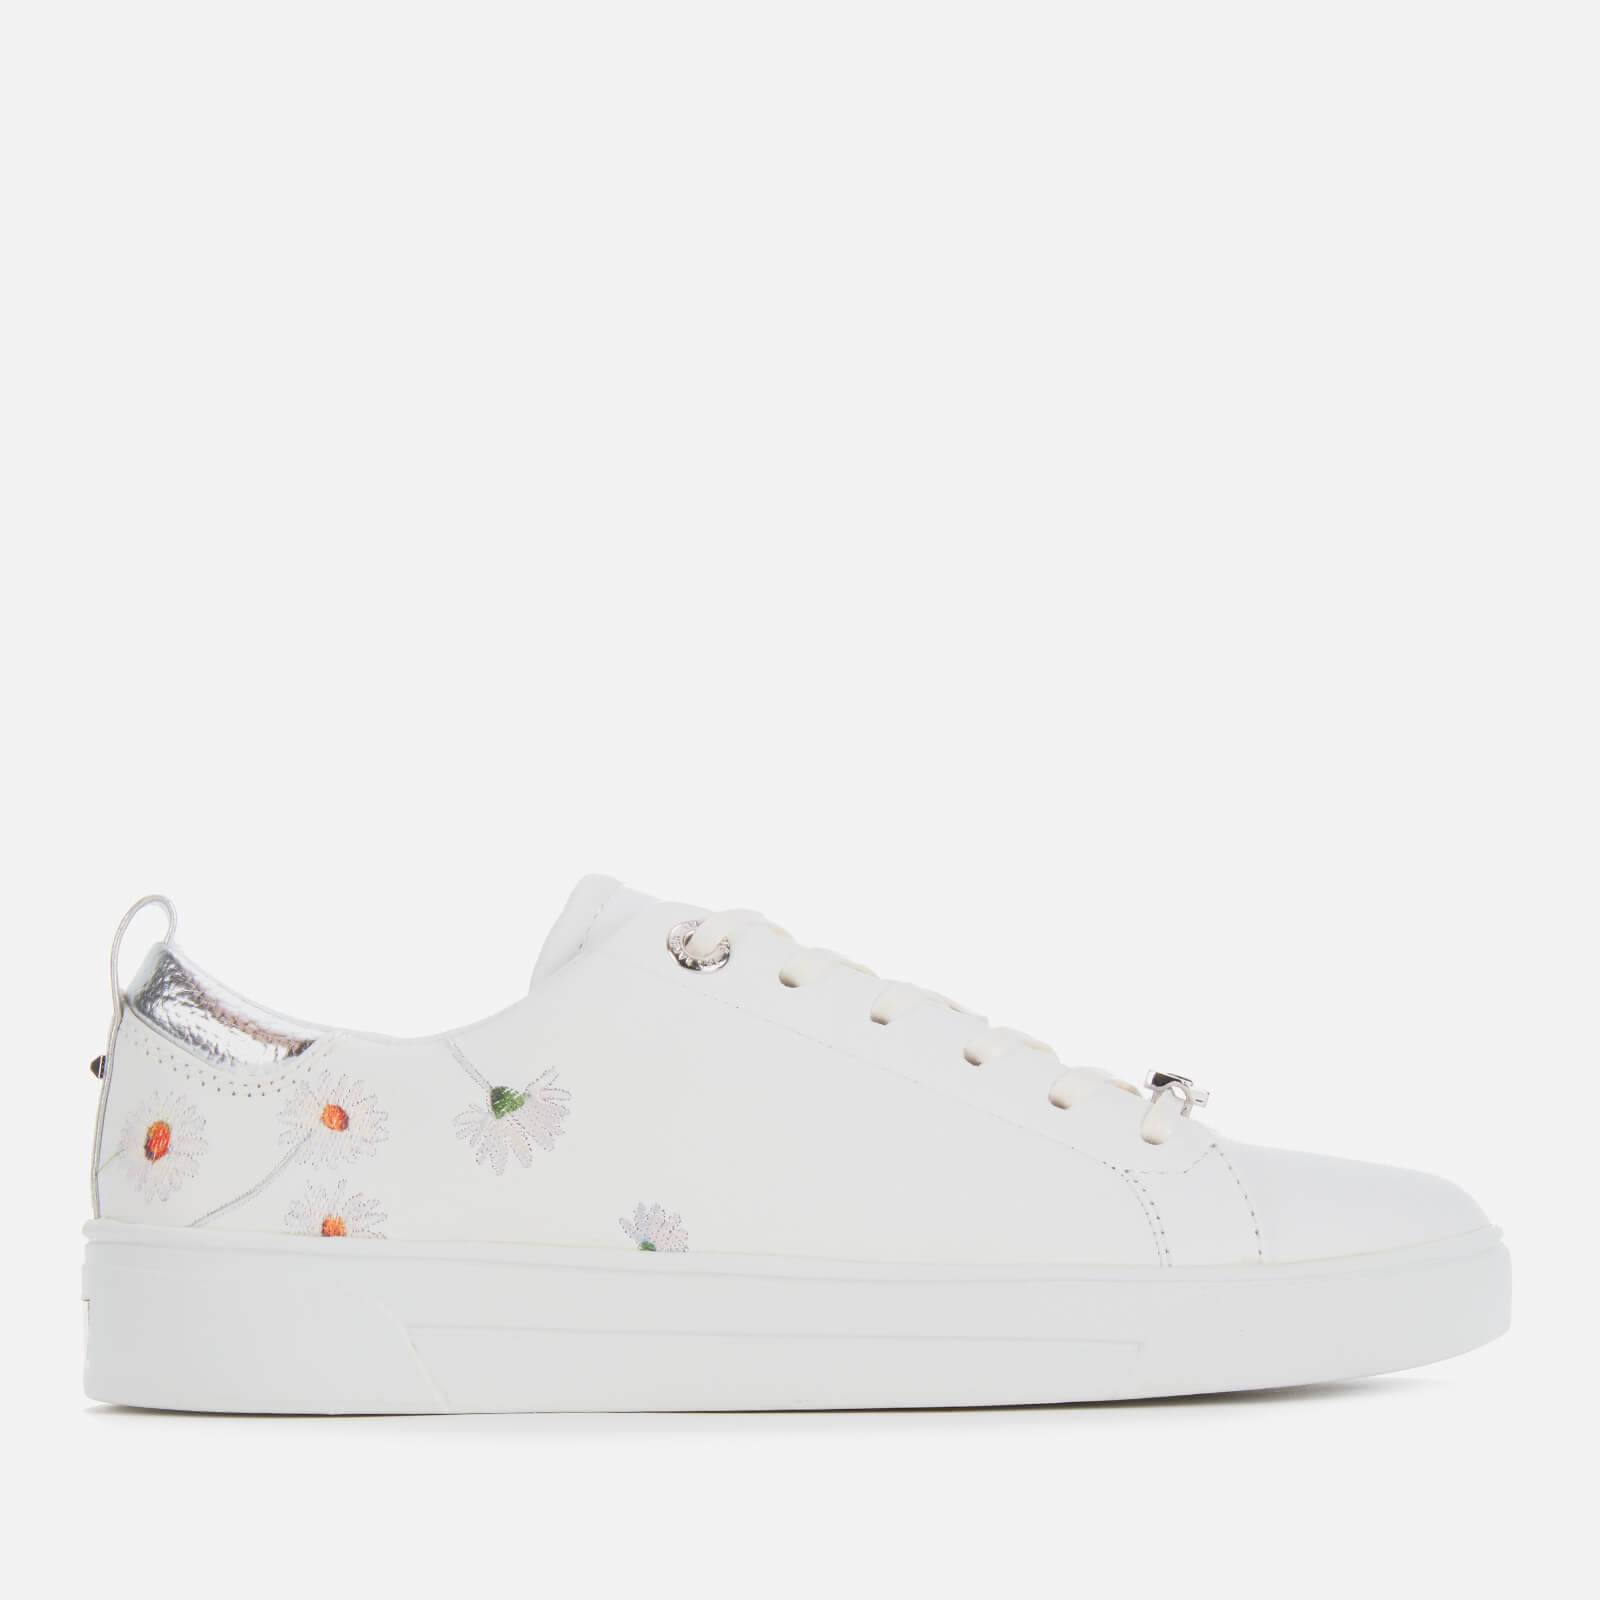 Ted Baker Women's Chalene Leather Low Top Trainers - White - UK 8 - White